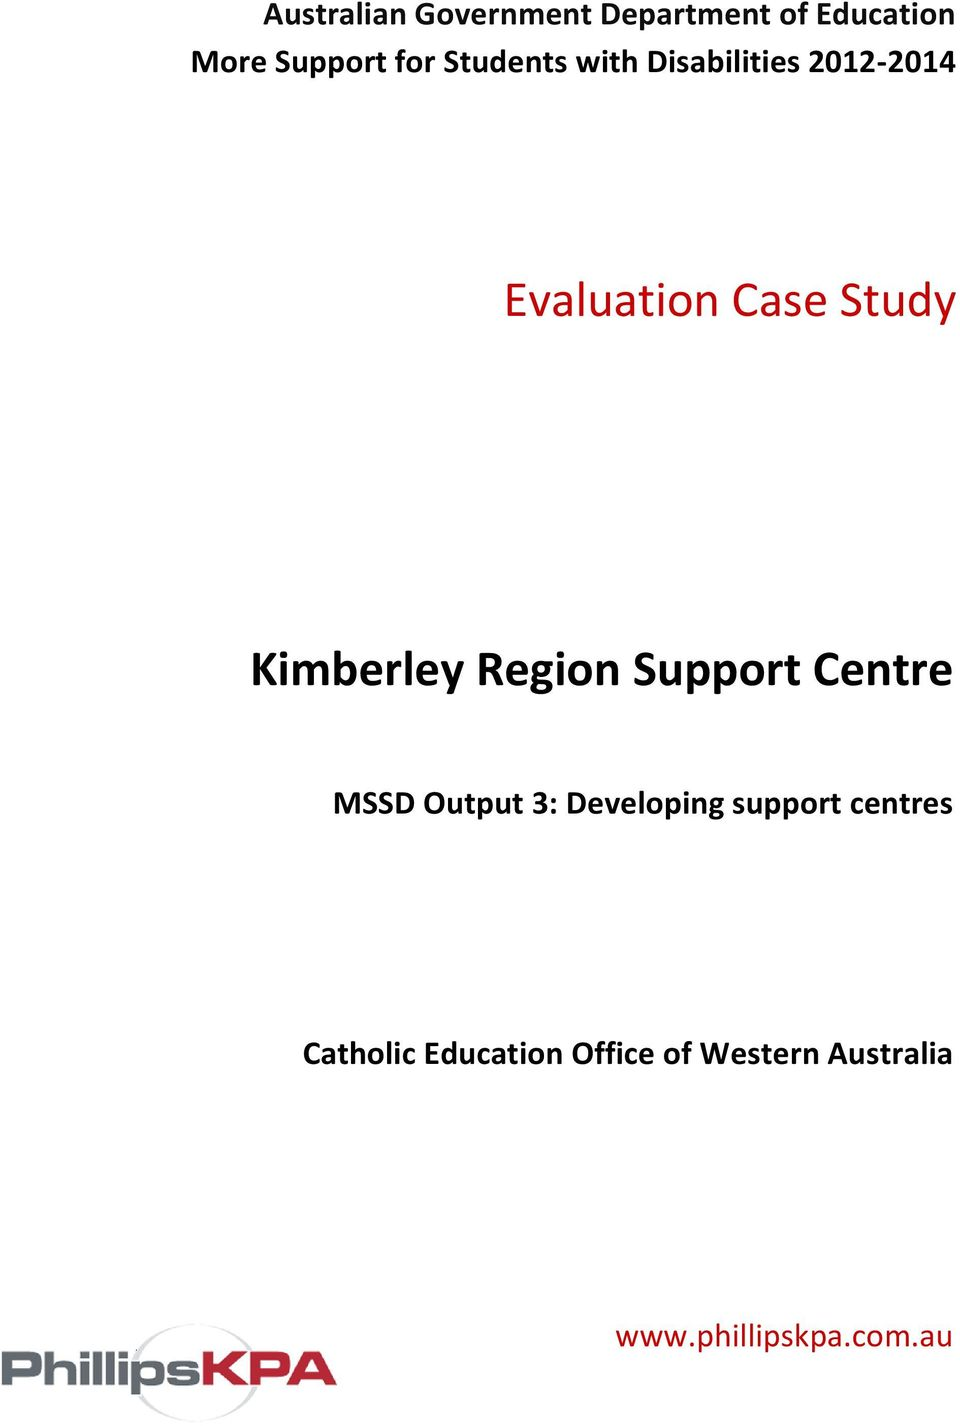 Kimberley Region Support Centre MSSD Output 3: Developing support